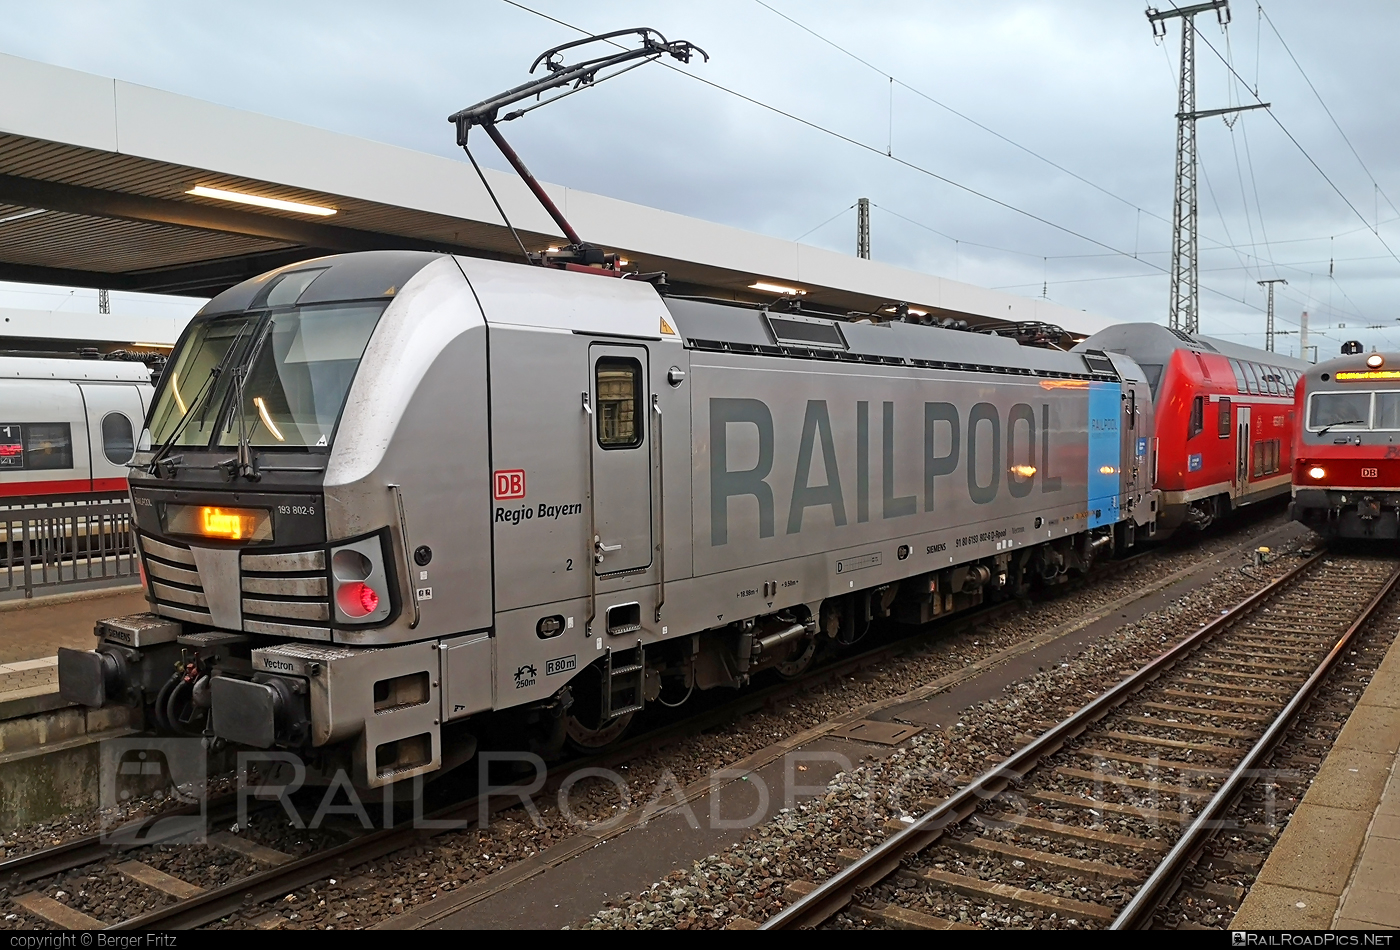 Siemens Vectron AC - 193 802-6 operated by DB Regio AG #DBregio #DBregioAG #railpool #railpoolgmbh #siemens #siemensvectron #siemensvectronac #vectron #vectronac